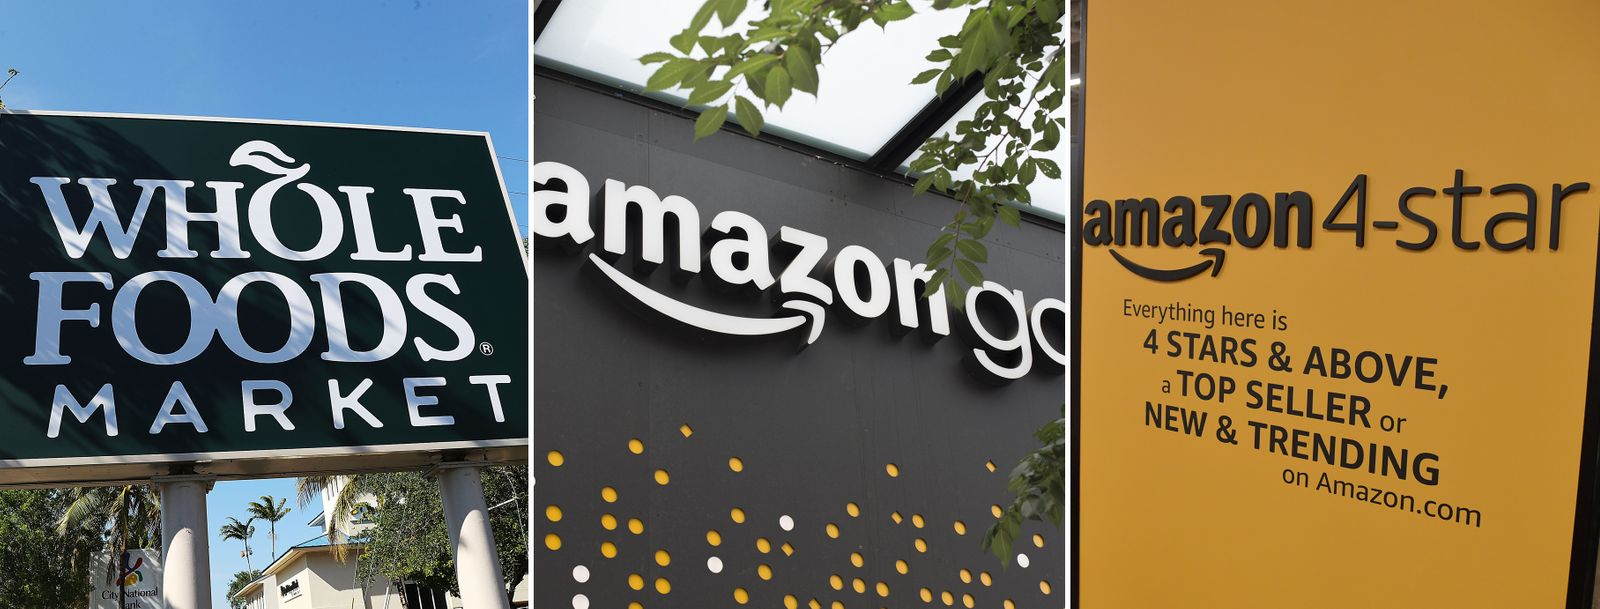 EINMALIGE VERWENDUNG KOMBO amazon / whole foods market / amazon go / amazon 4-star